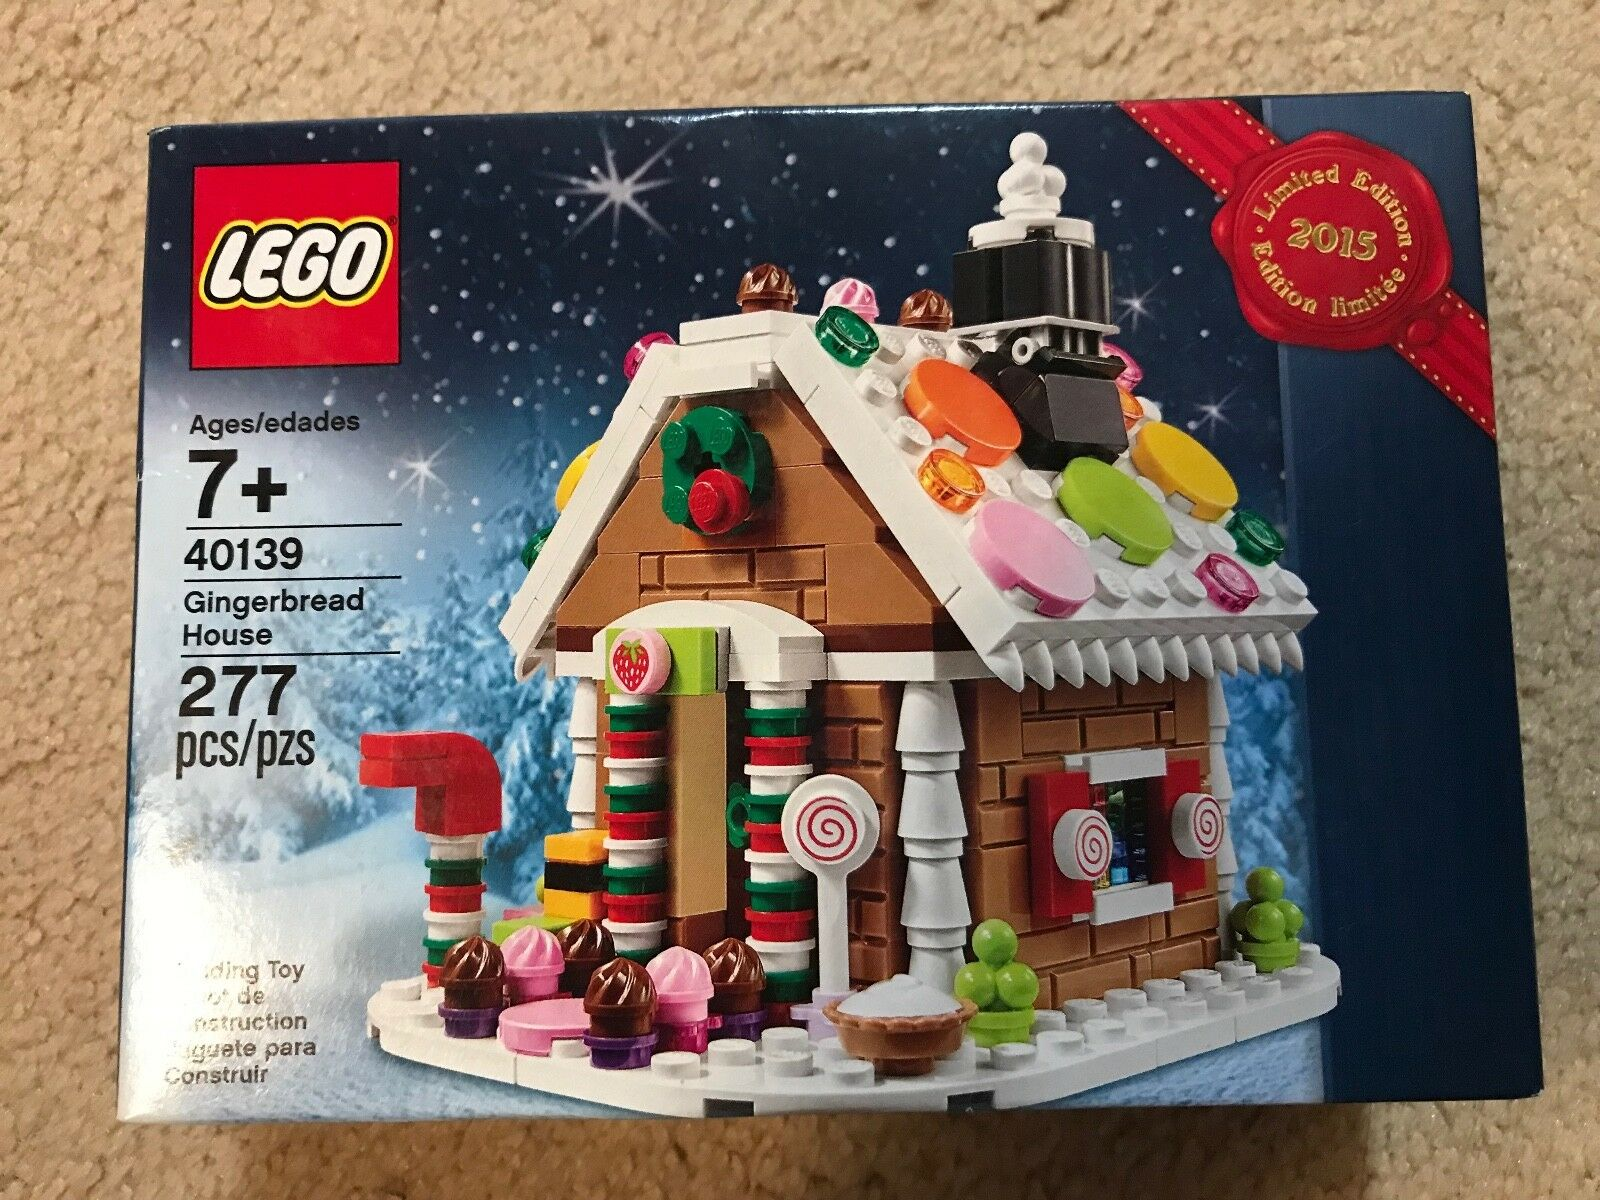 NIB Lego Gingerbread House 2015 Exclusive Set 40139